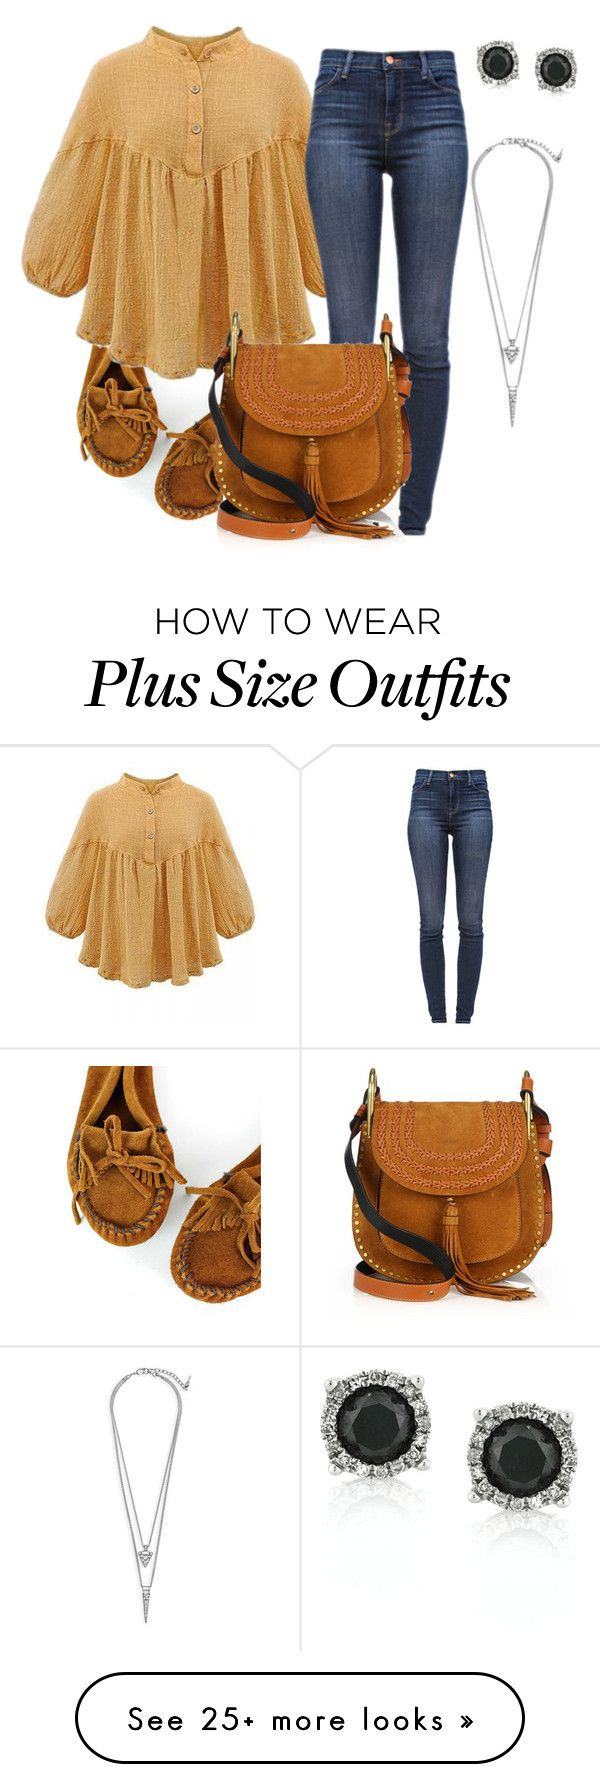 """Sem título #521"" by dolcevita12 on Polyvore featuring Minnetonka, J Brand, Chloé, Mark Broumand, Chloe + Isabel, women's clothing, women's fashion, women, female and woman"